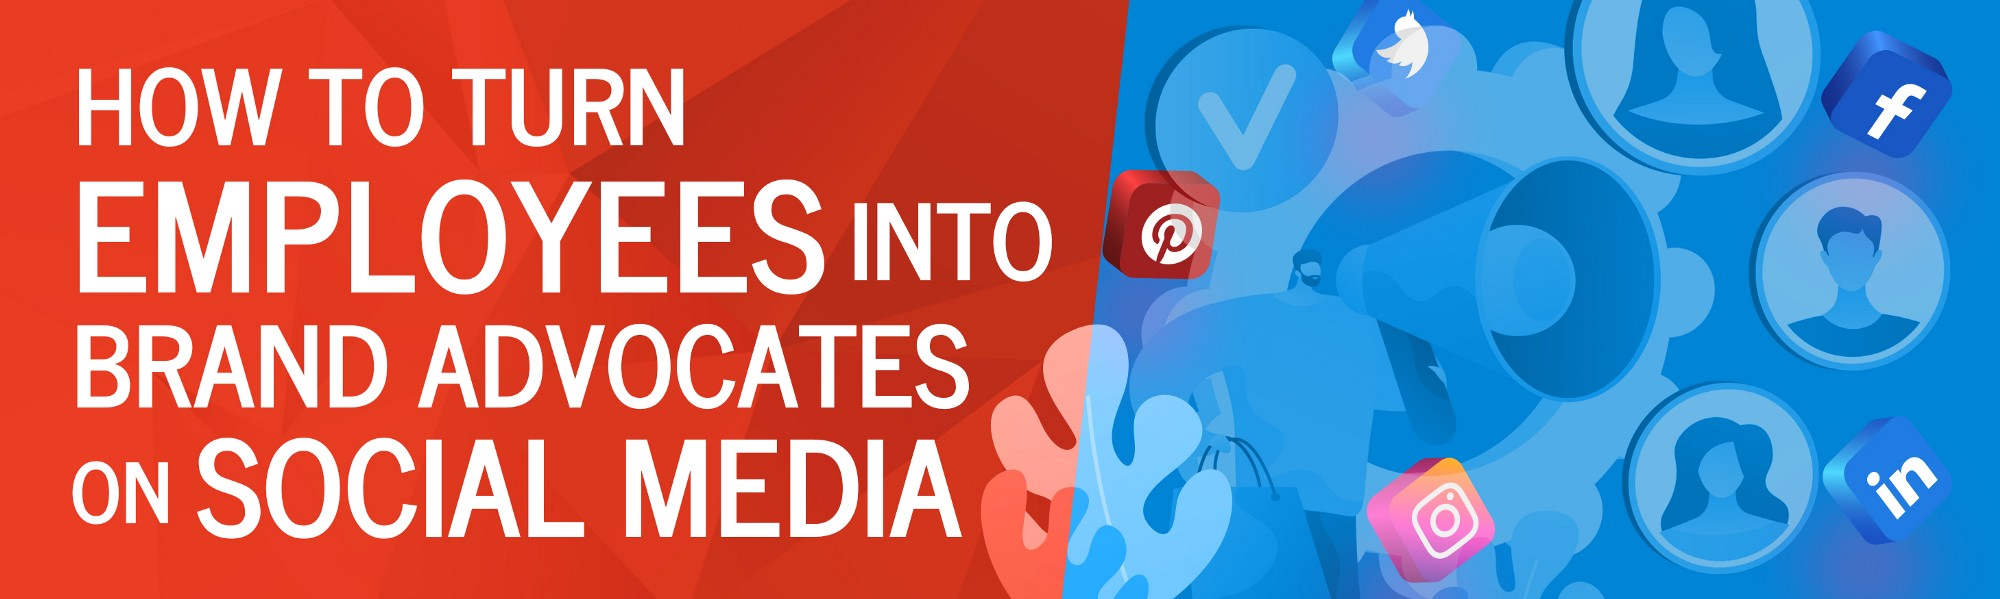 How to Turn Employees into Brand Advocates on Social Media